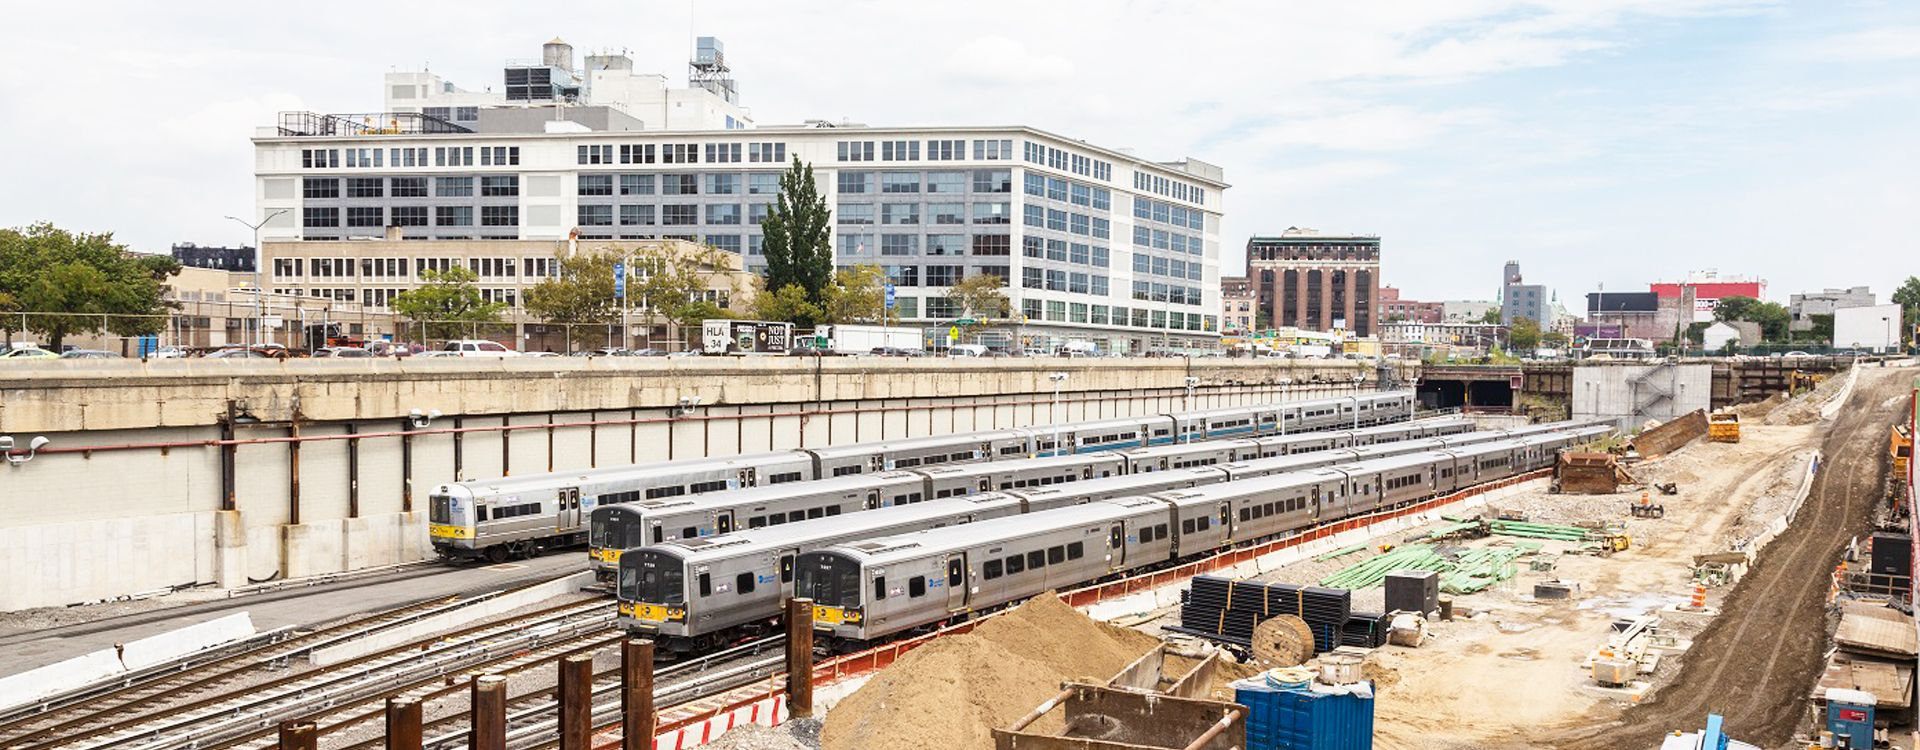 bnr-pacific-park-brooklyn-transportation-buildings-converge-vanderbilt-yard